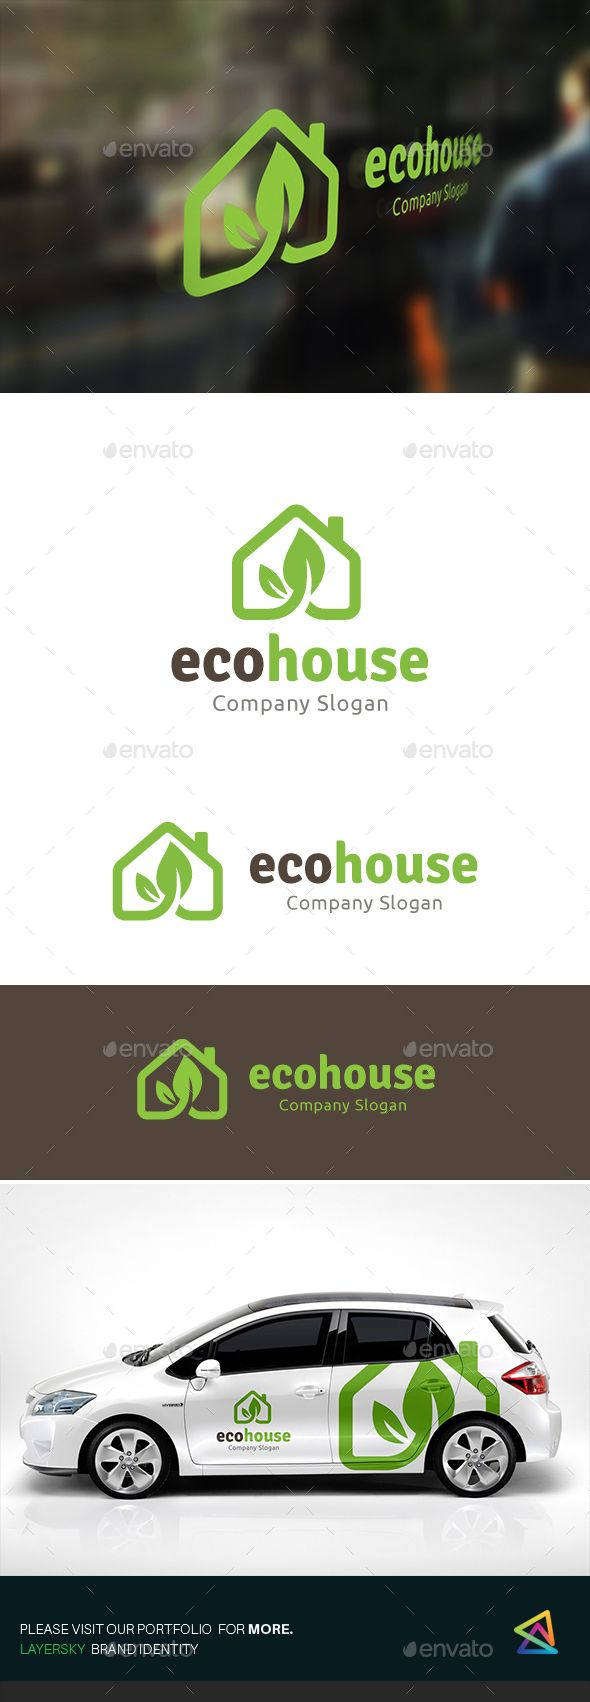 Eco House Logo Template PSD, Vector EPS, AI. Download here: http://graphicriver.net/item/eco-house/15541590?ref=ksioks